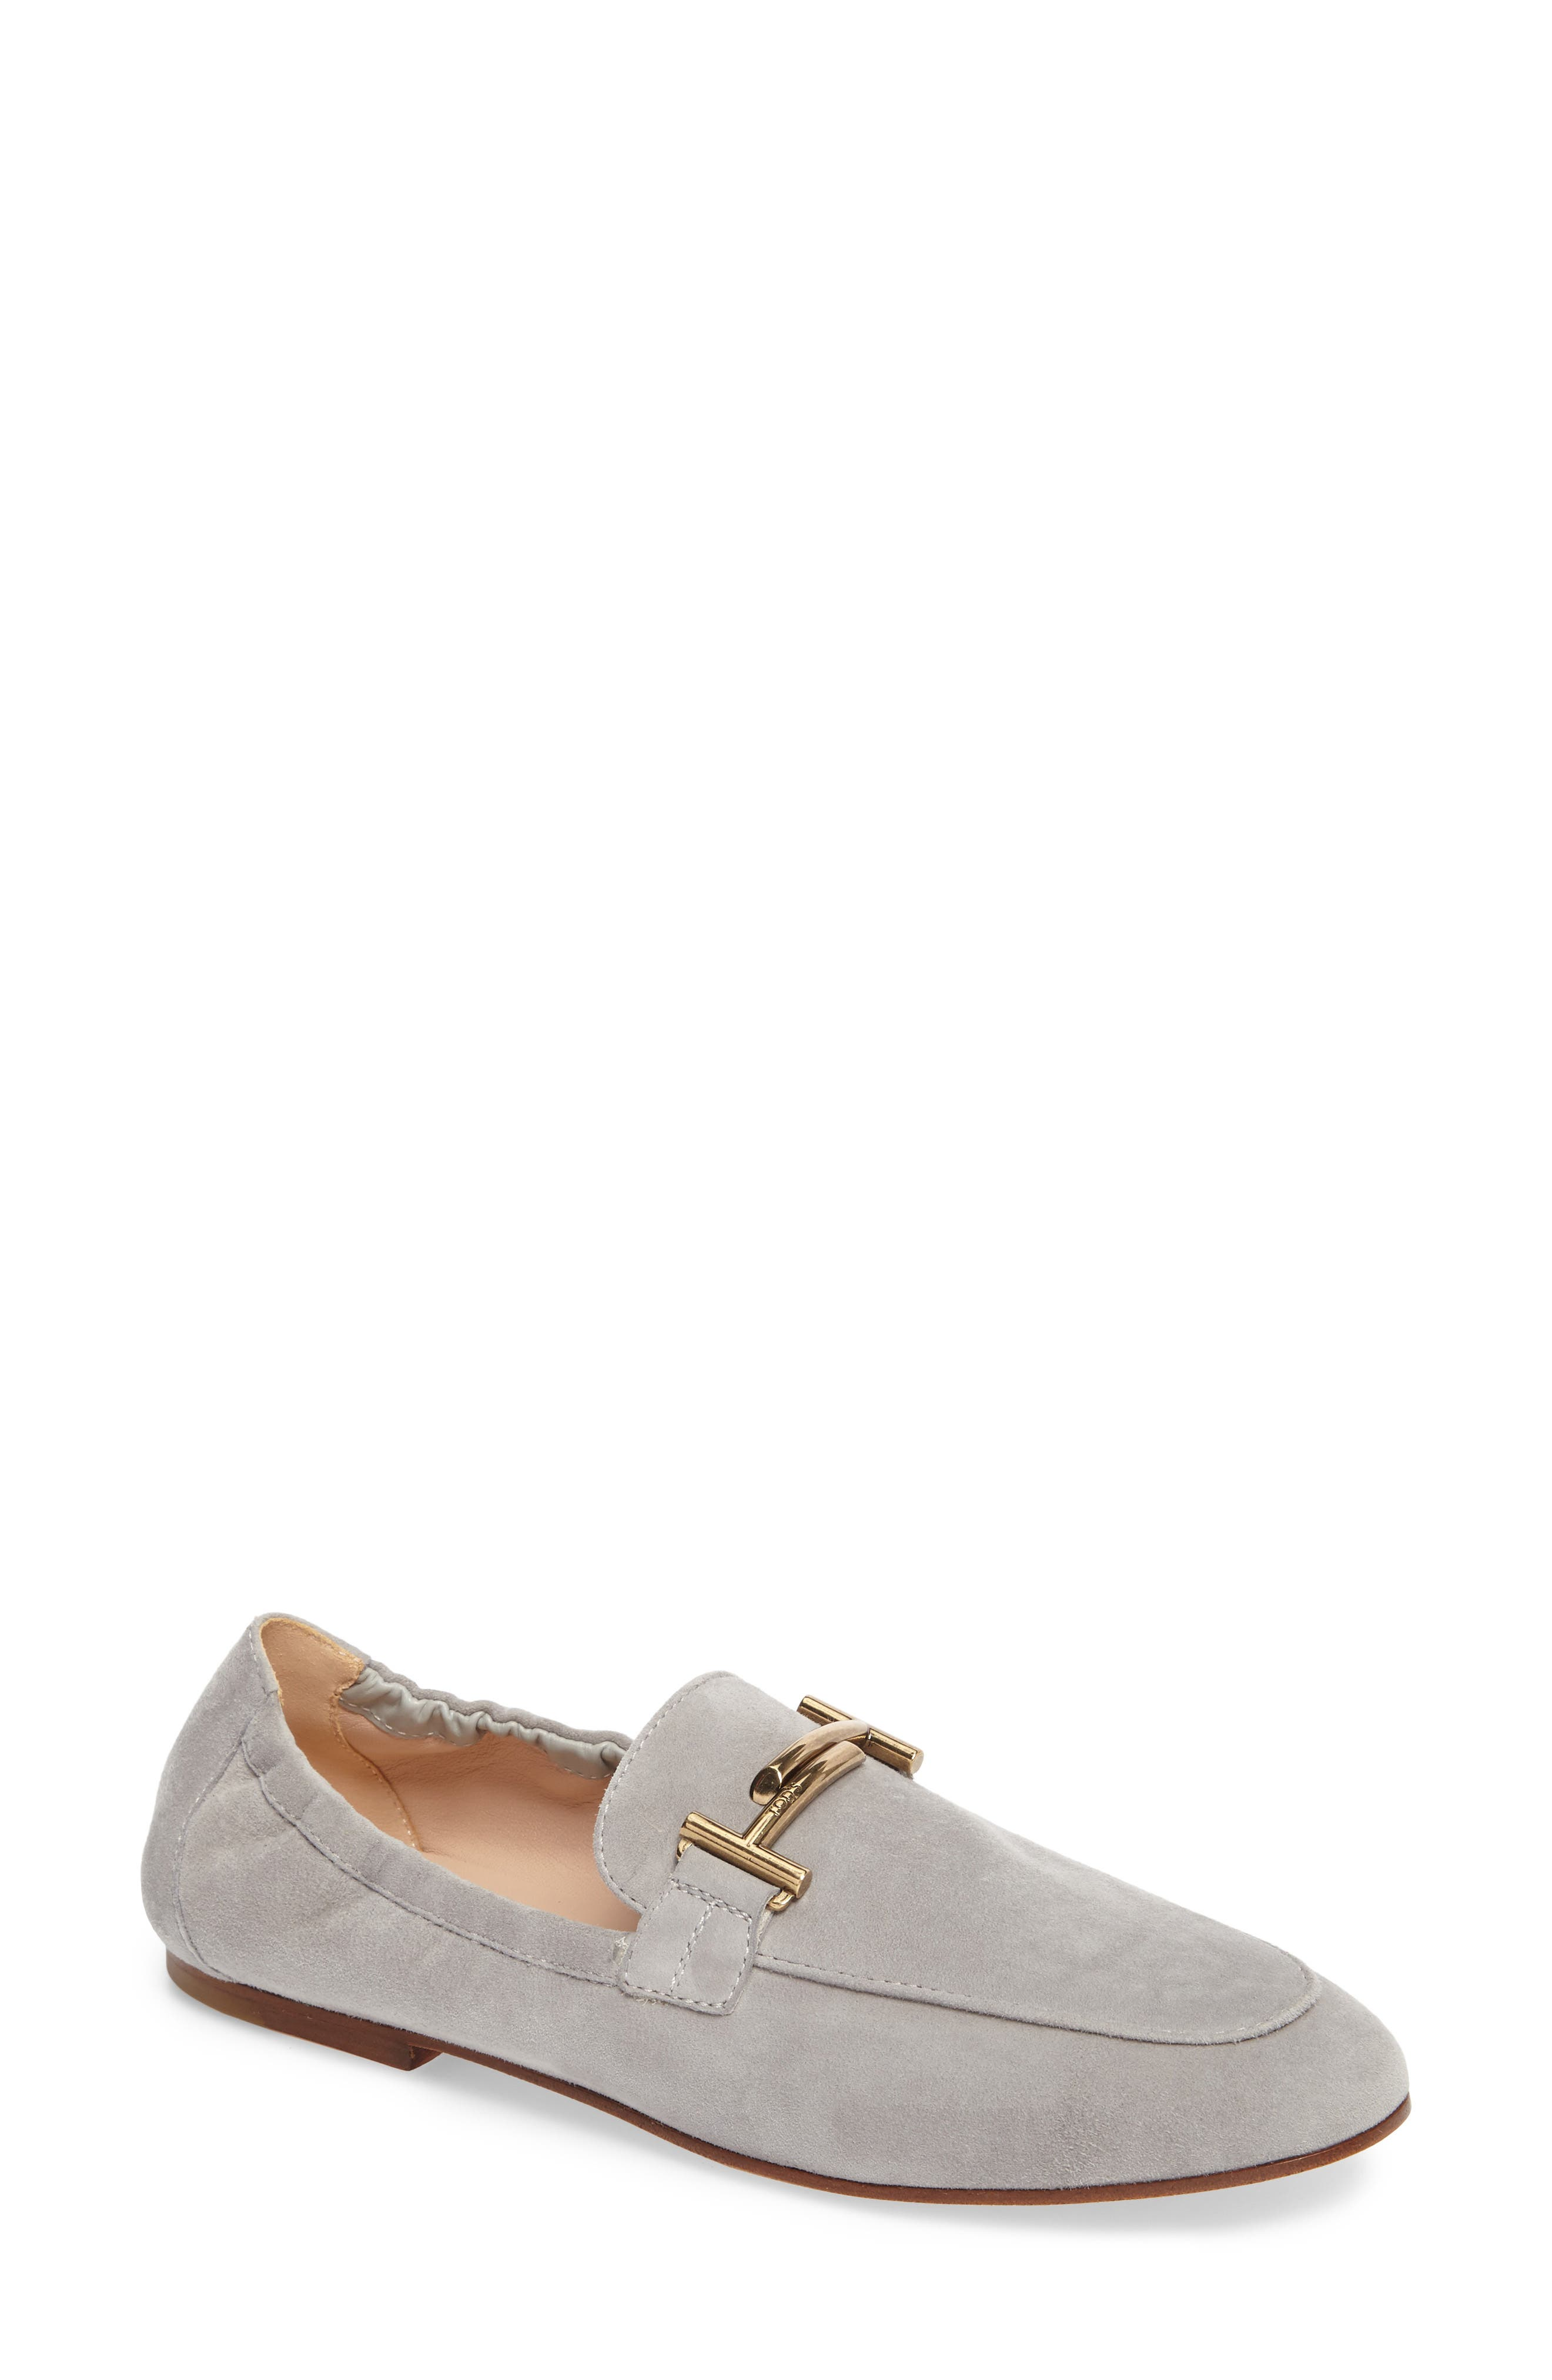 Double T Scrunch Loafer,                             Main thumbnail 1, color,                             020